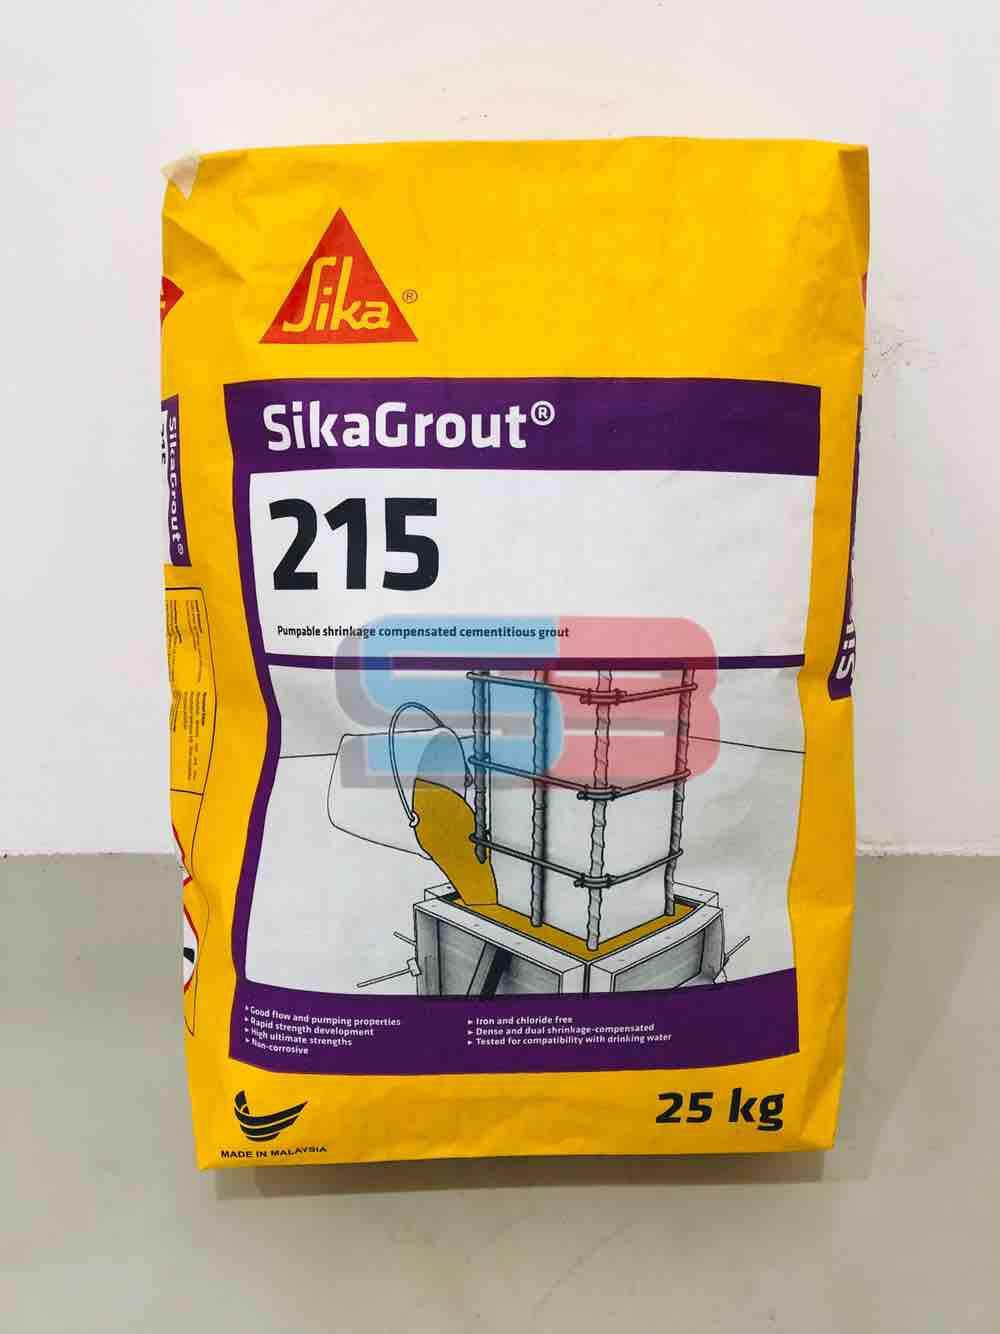 SikaGrout 215